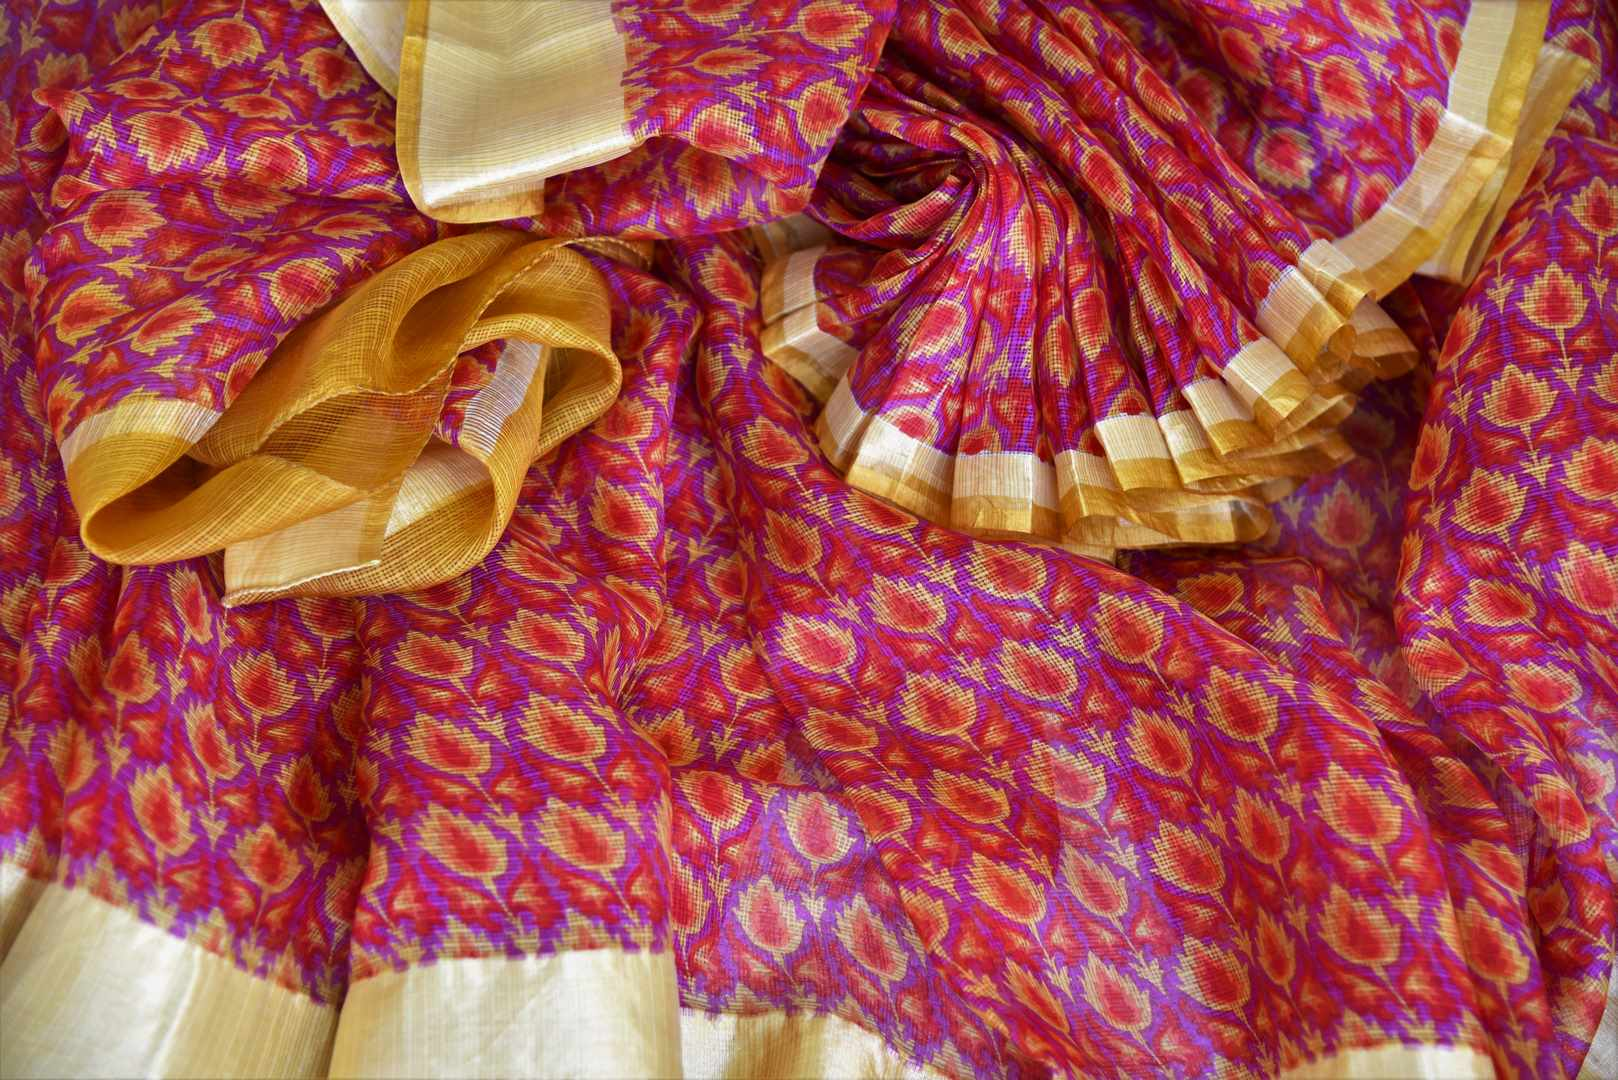 Treat yourself with the charming quintessential summer staple kota silk sari. A perfect blush pink with floral prints and effortless flow, style this sari with contrast yellow and zari blouse to work or formal events. Shop designer silk saris, embroidered sarees, ikkat sari online or visit Pure Elegance store, USA.-details